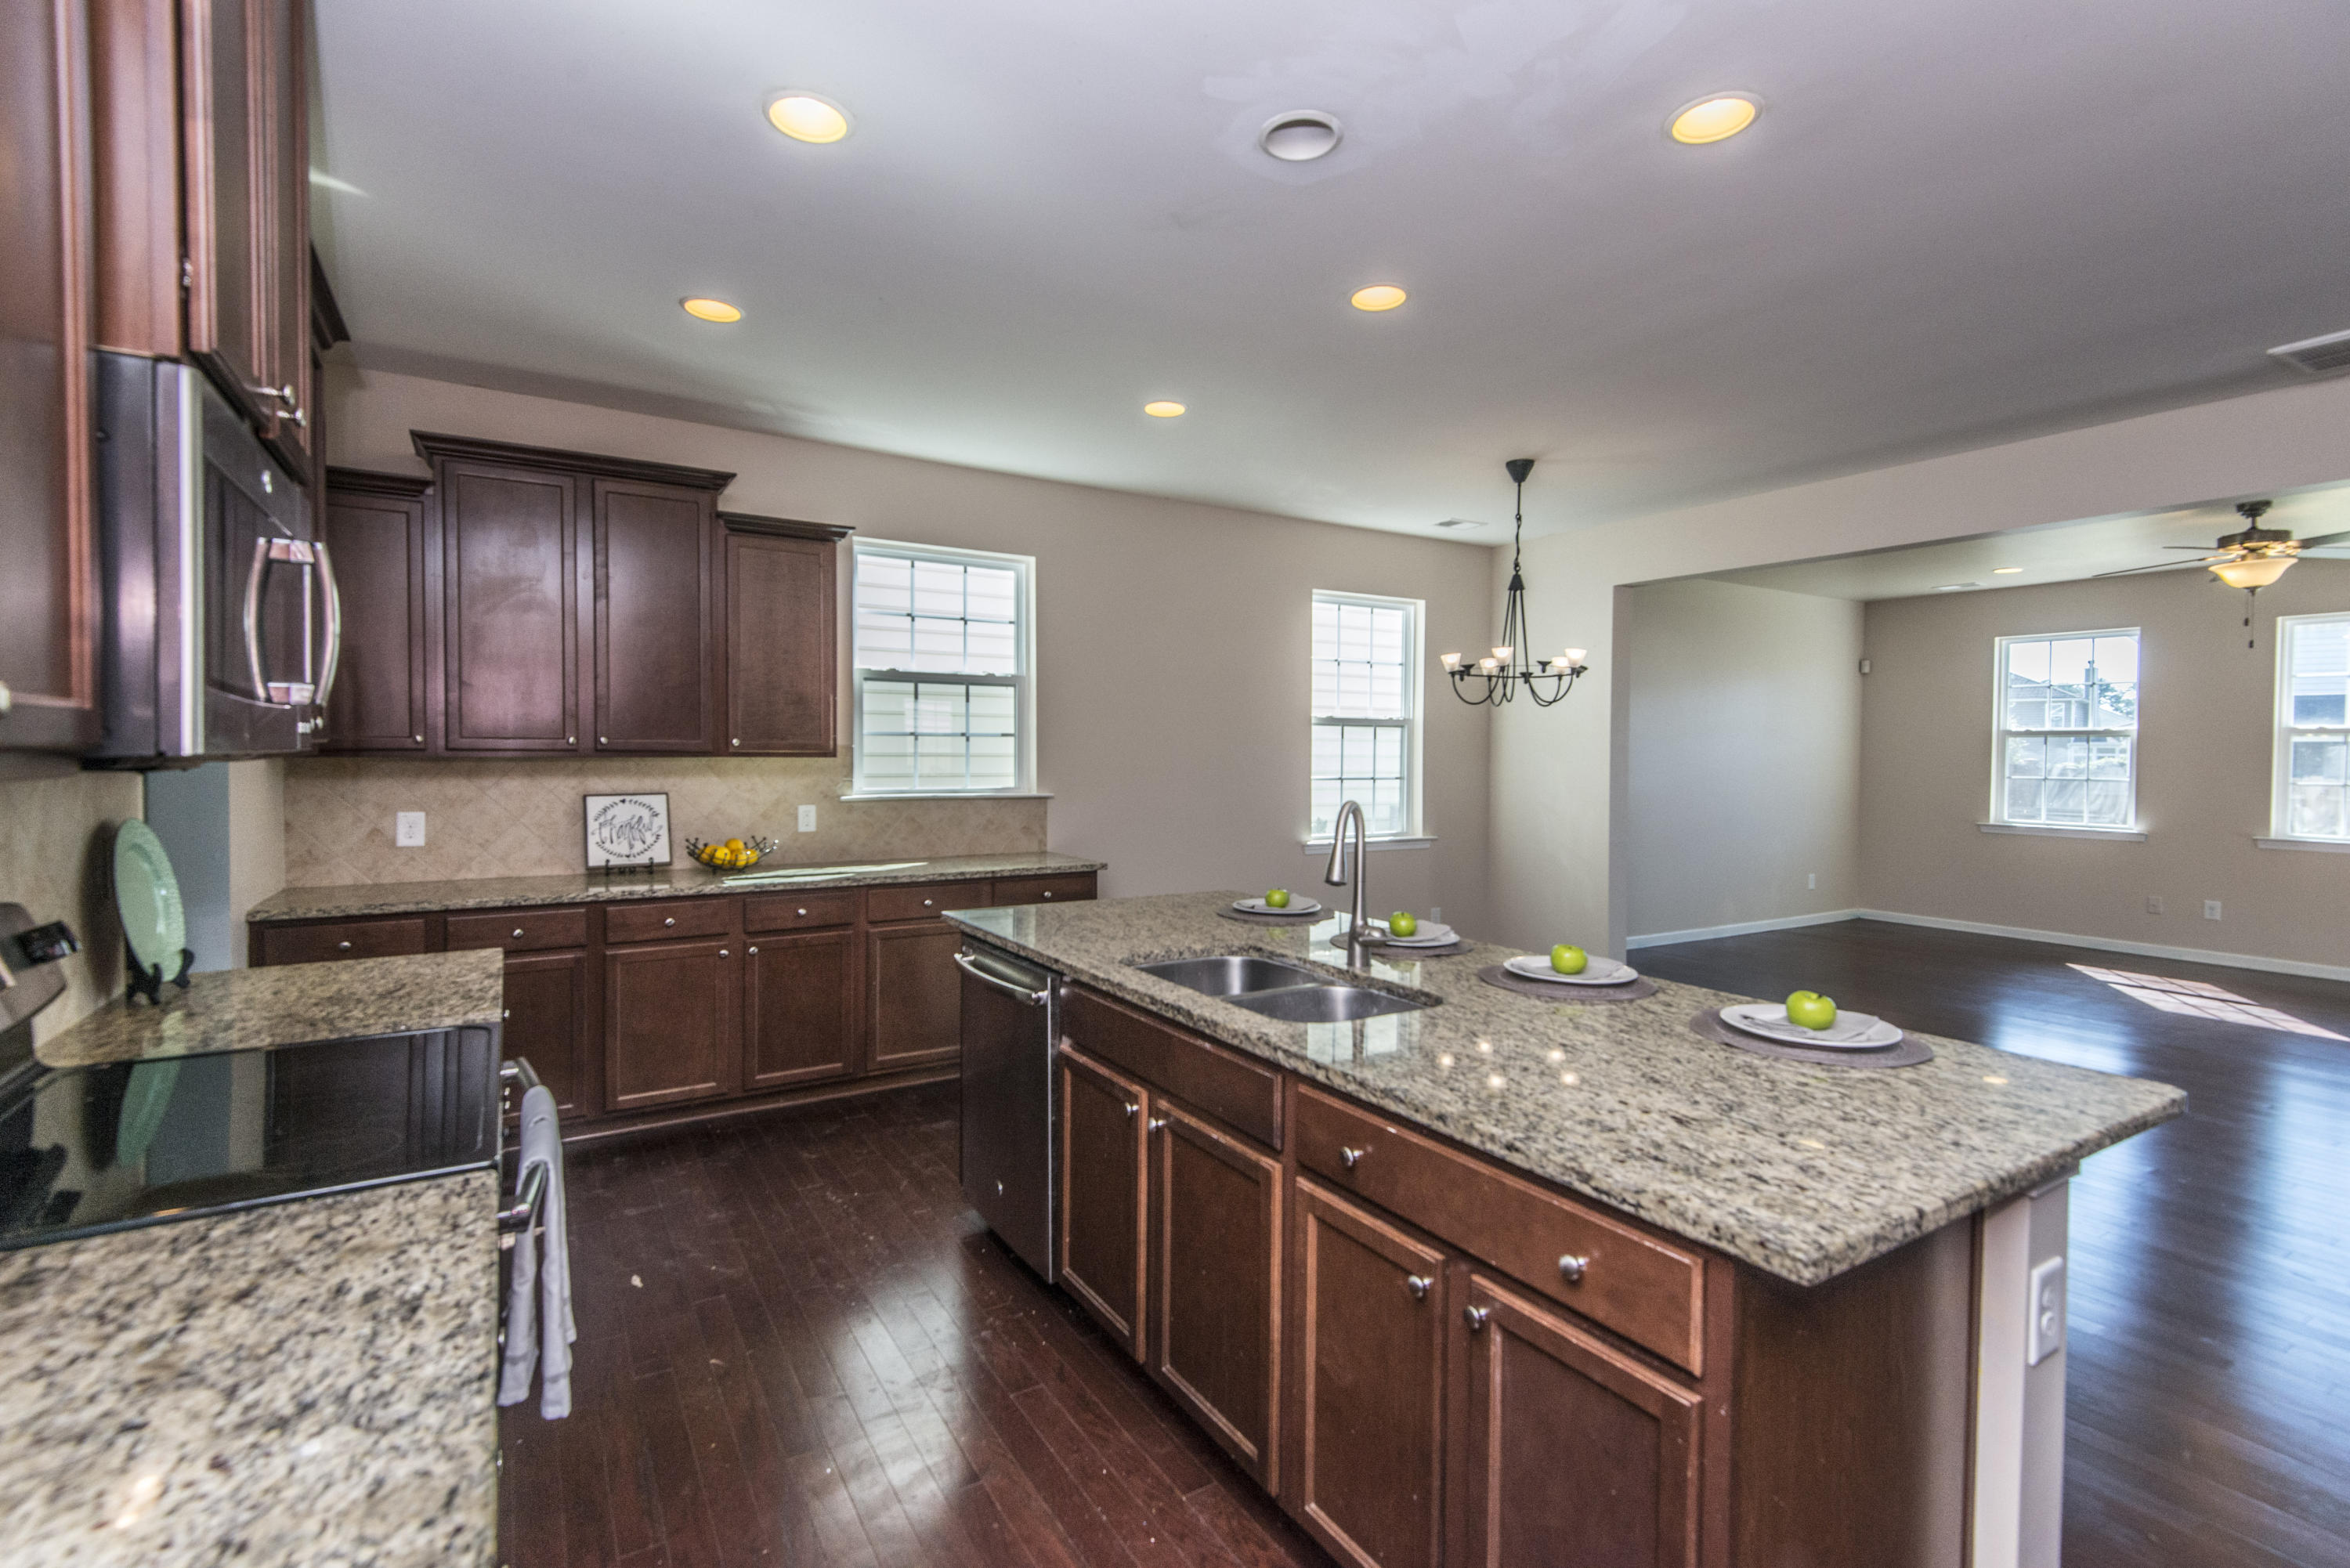 Wentworth Hall Homes For Sale - 216 Wexford, Summerville, SC - 2